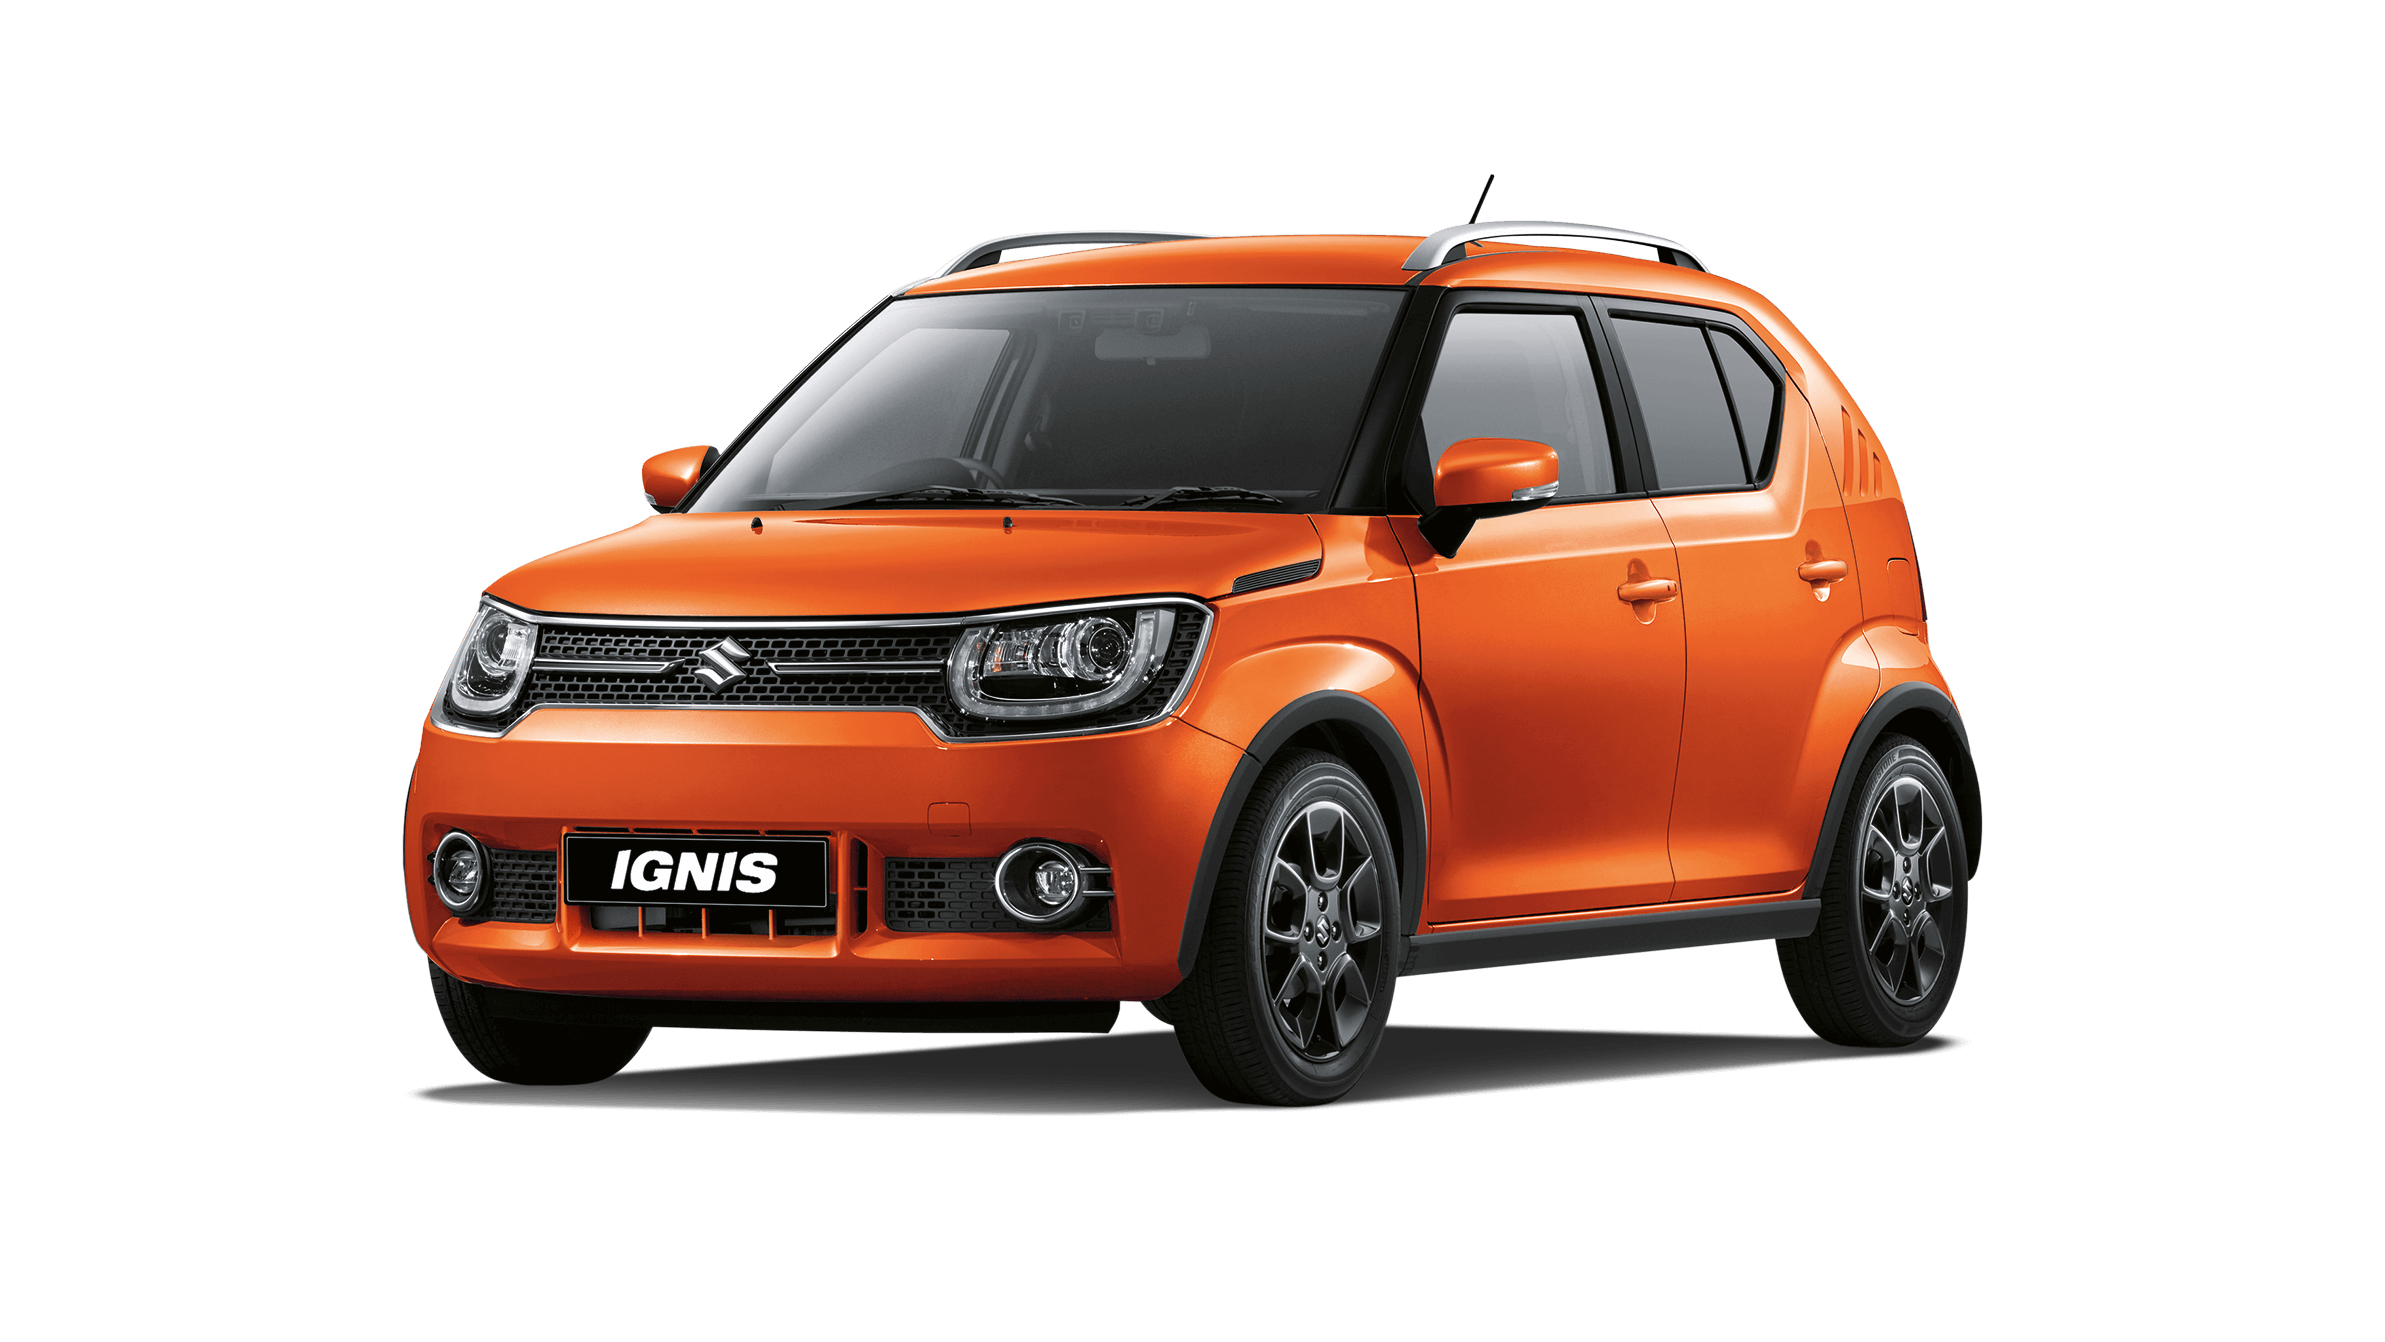 The Ignis SZ5 in Flame Orange